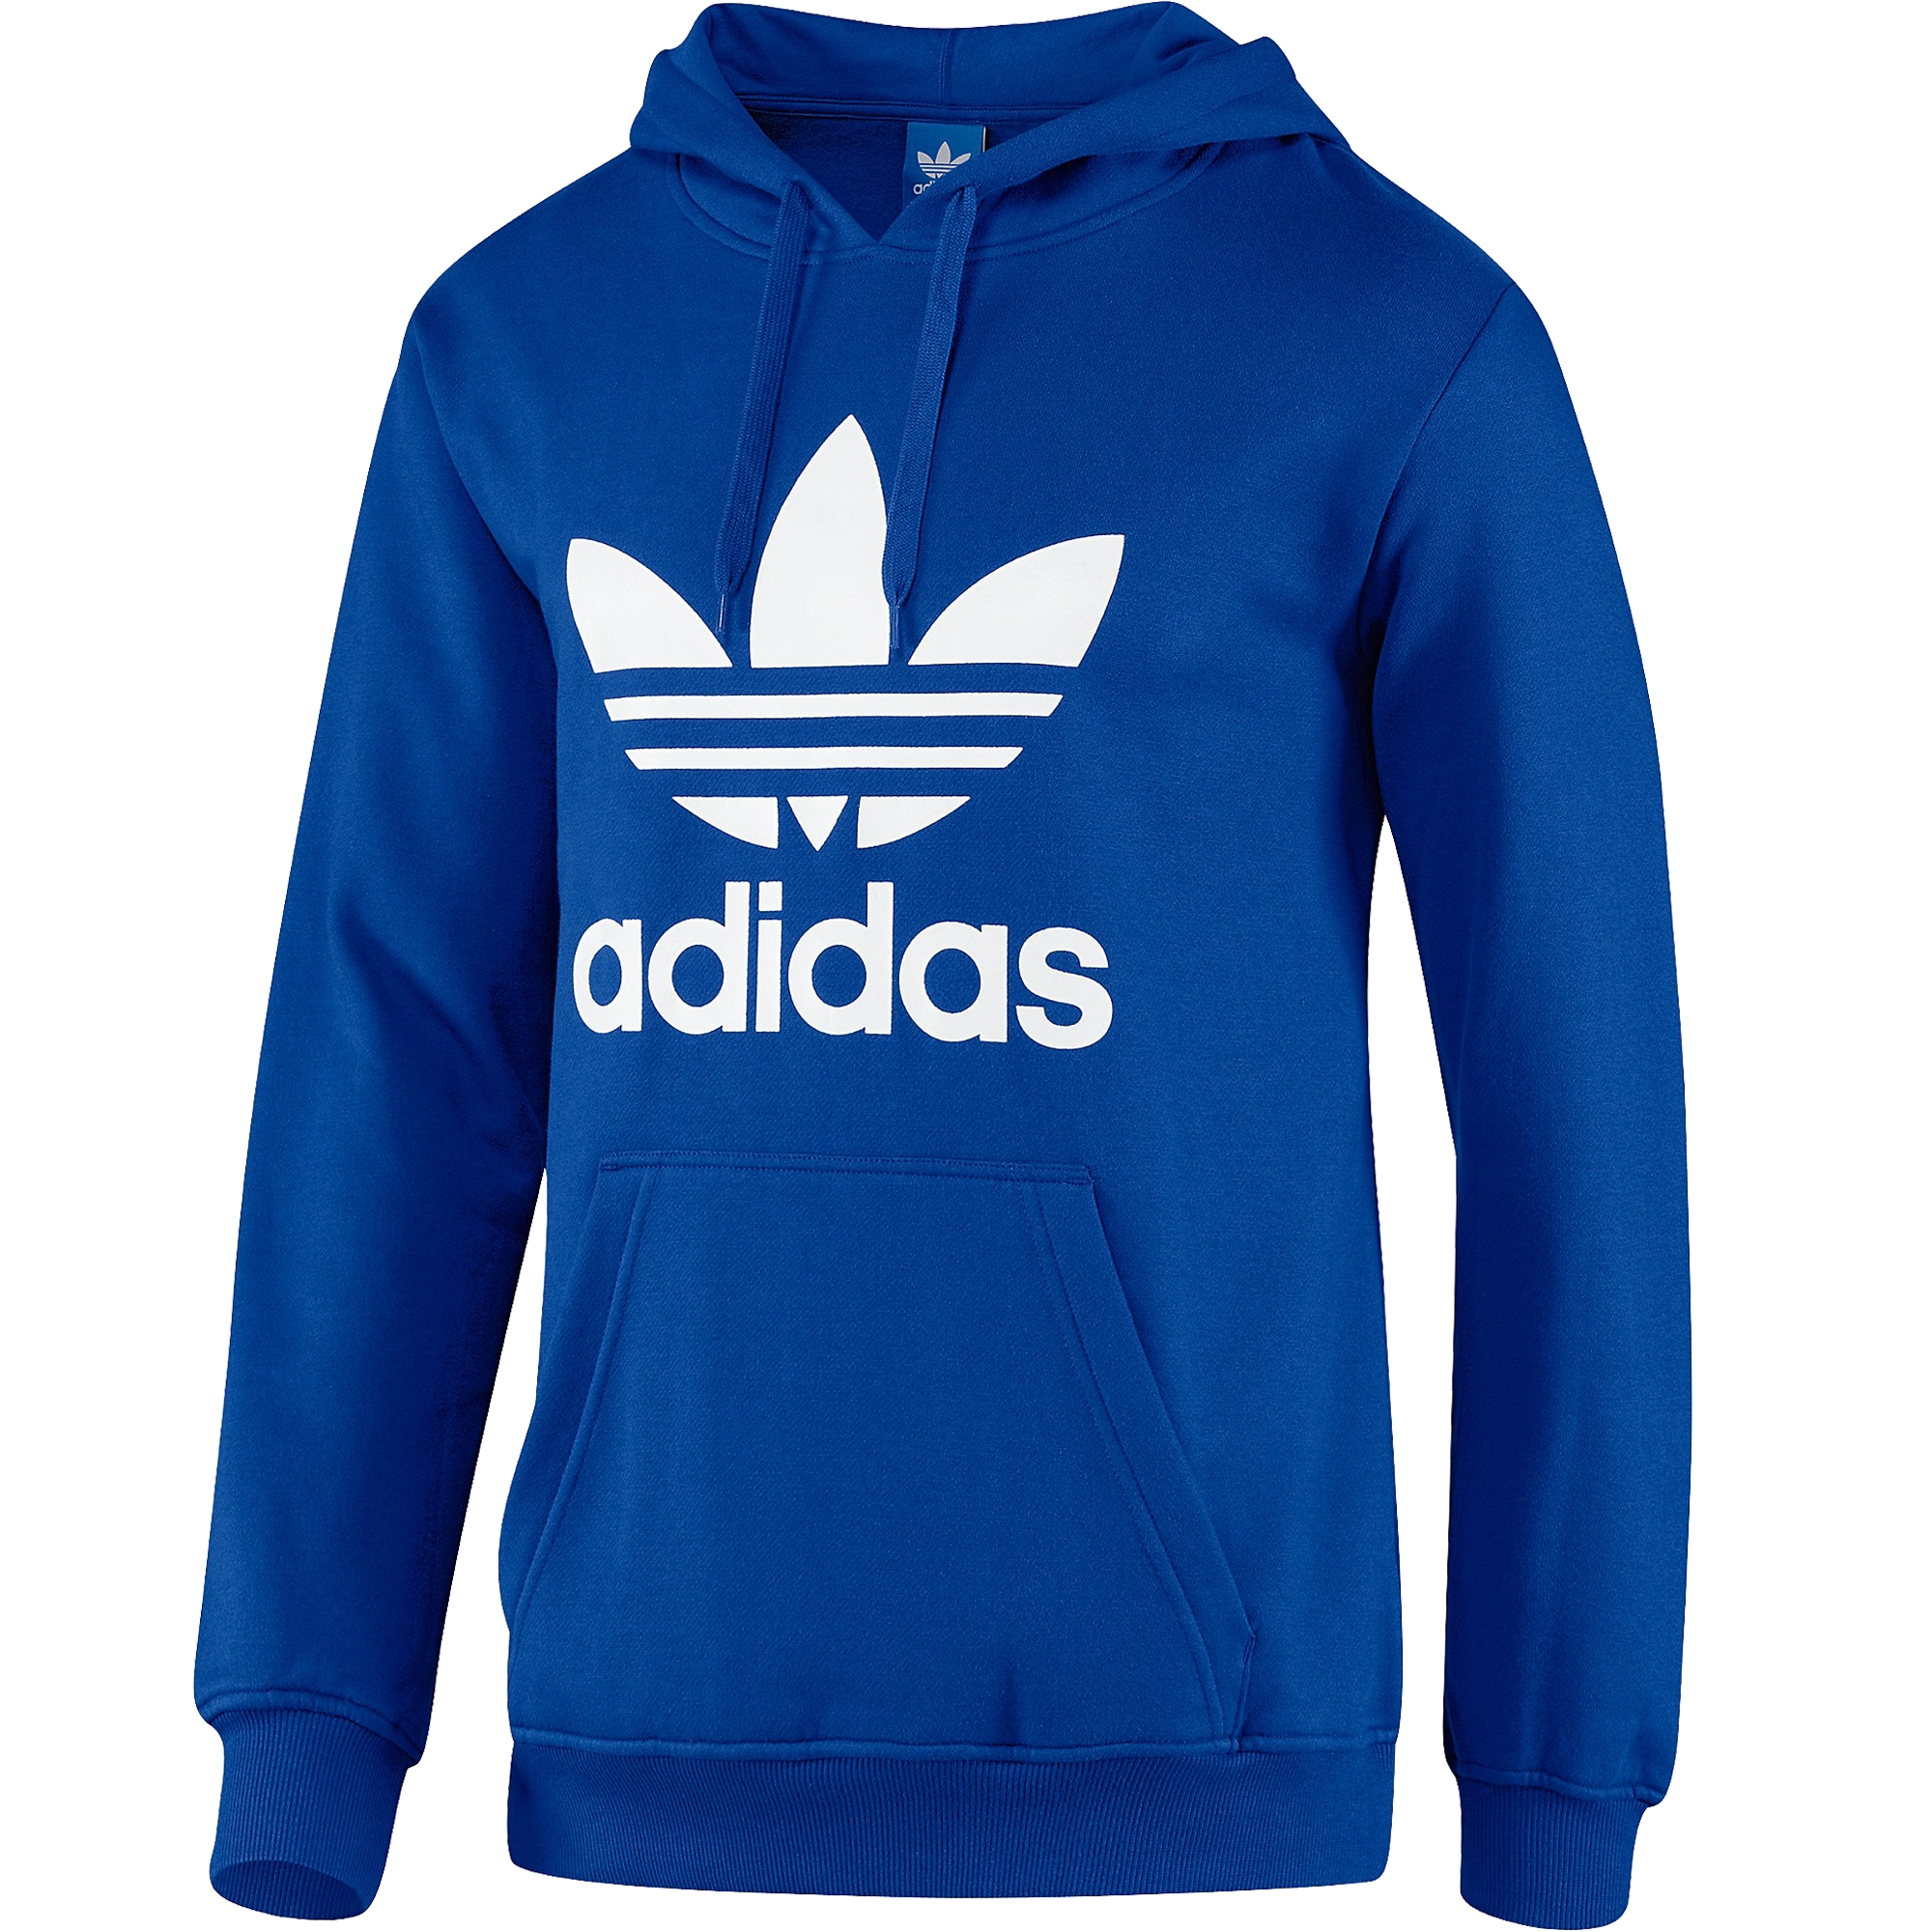 pin sweat adidas trefoil long hoody grey femme on pinterest. Black Bedroom Furniture Sets. Home Design Ideas